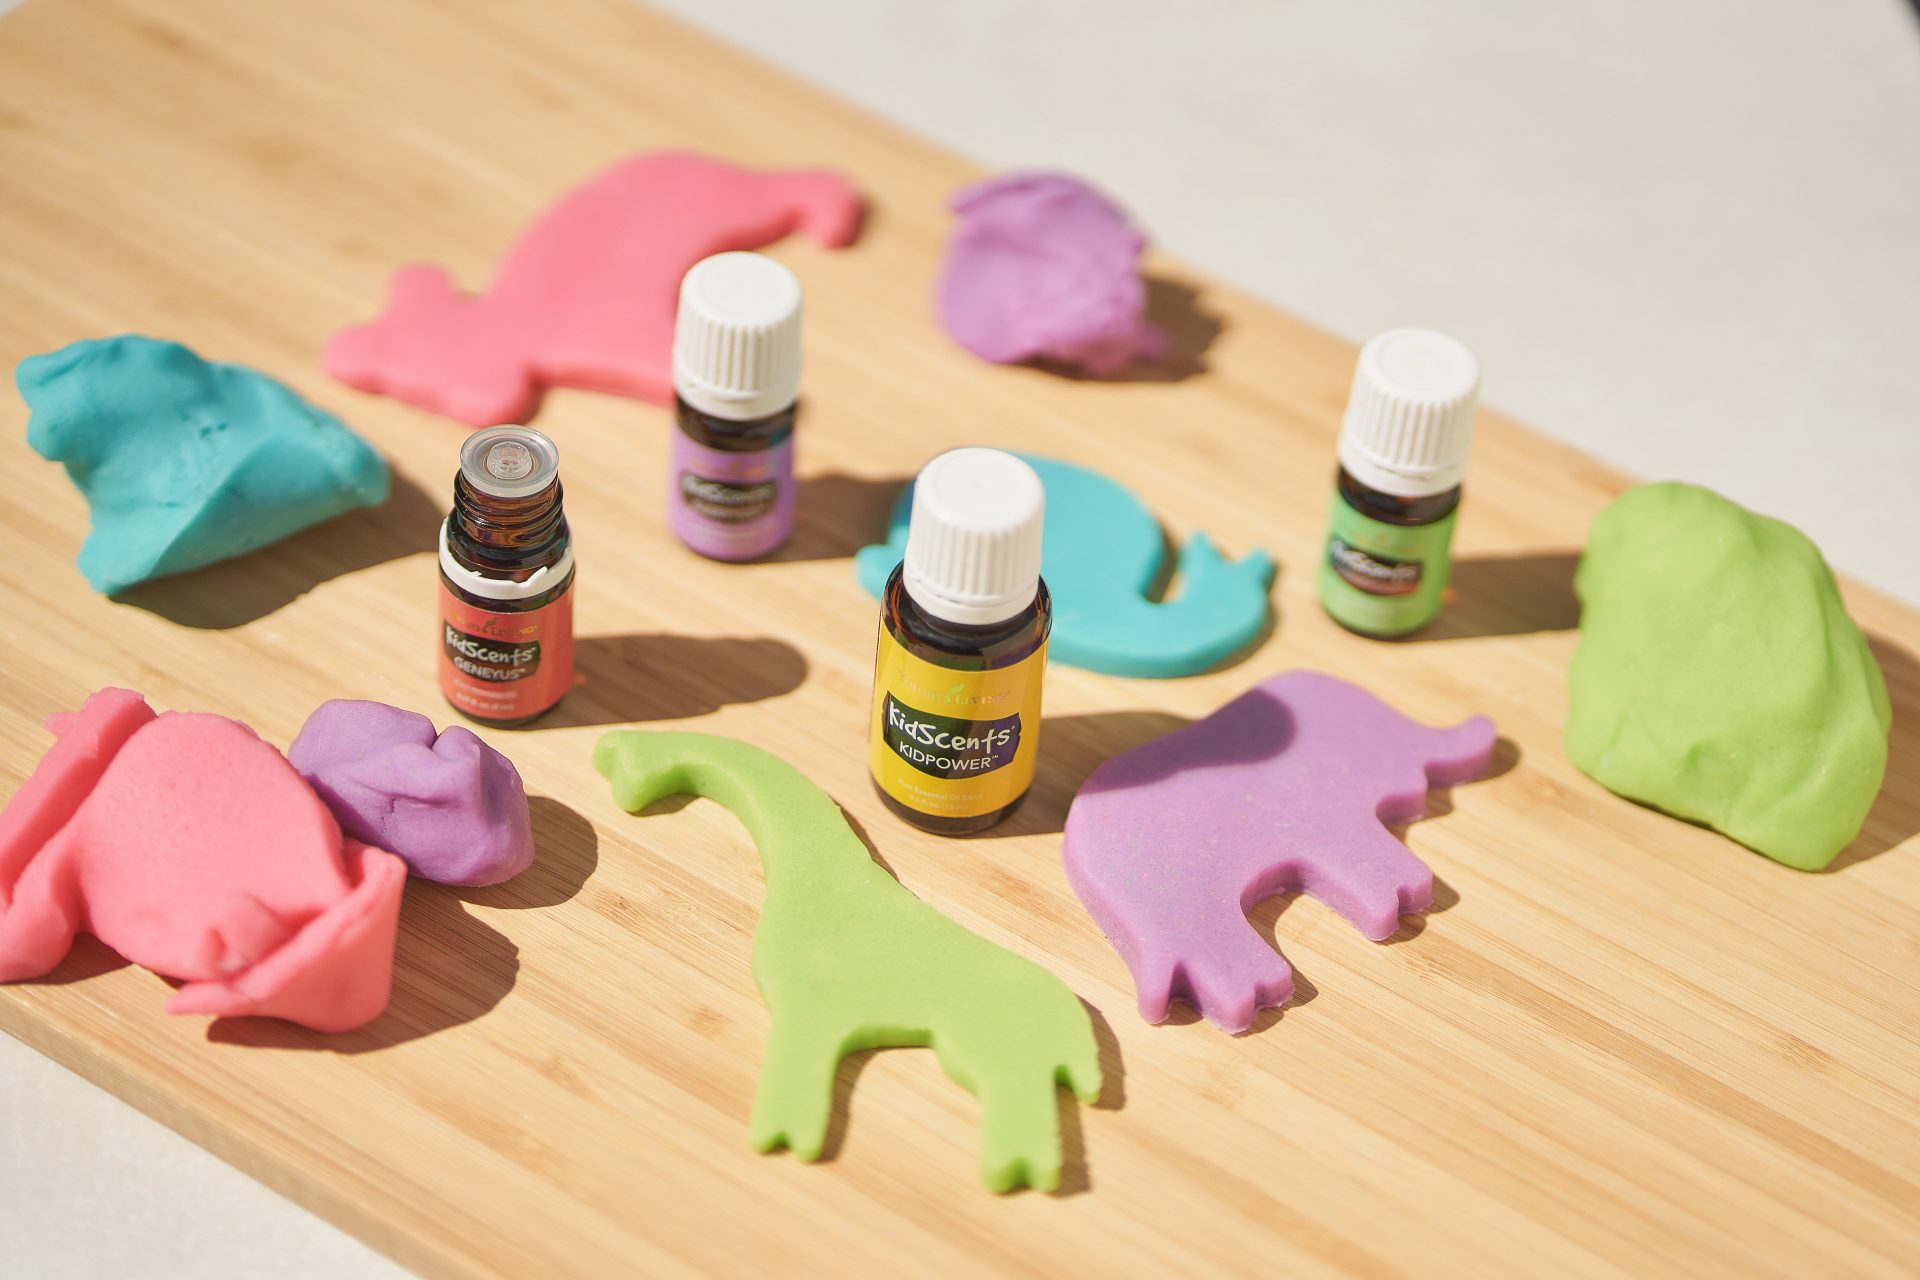 KidScents Play Dough - Young Living Lavender Life Blog